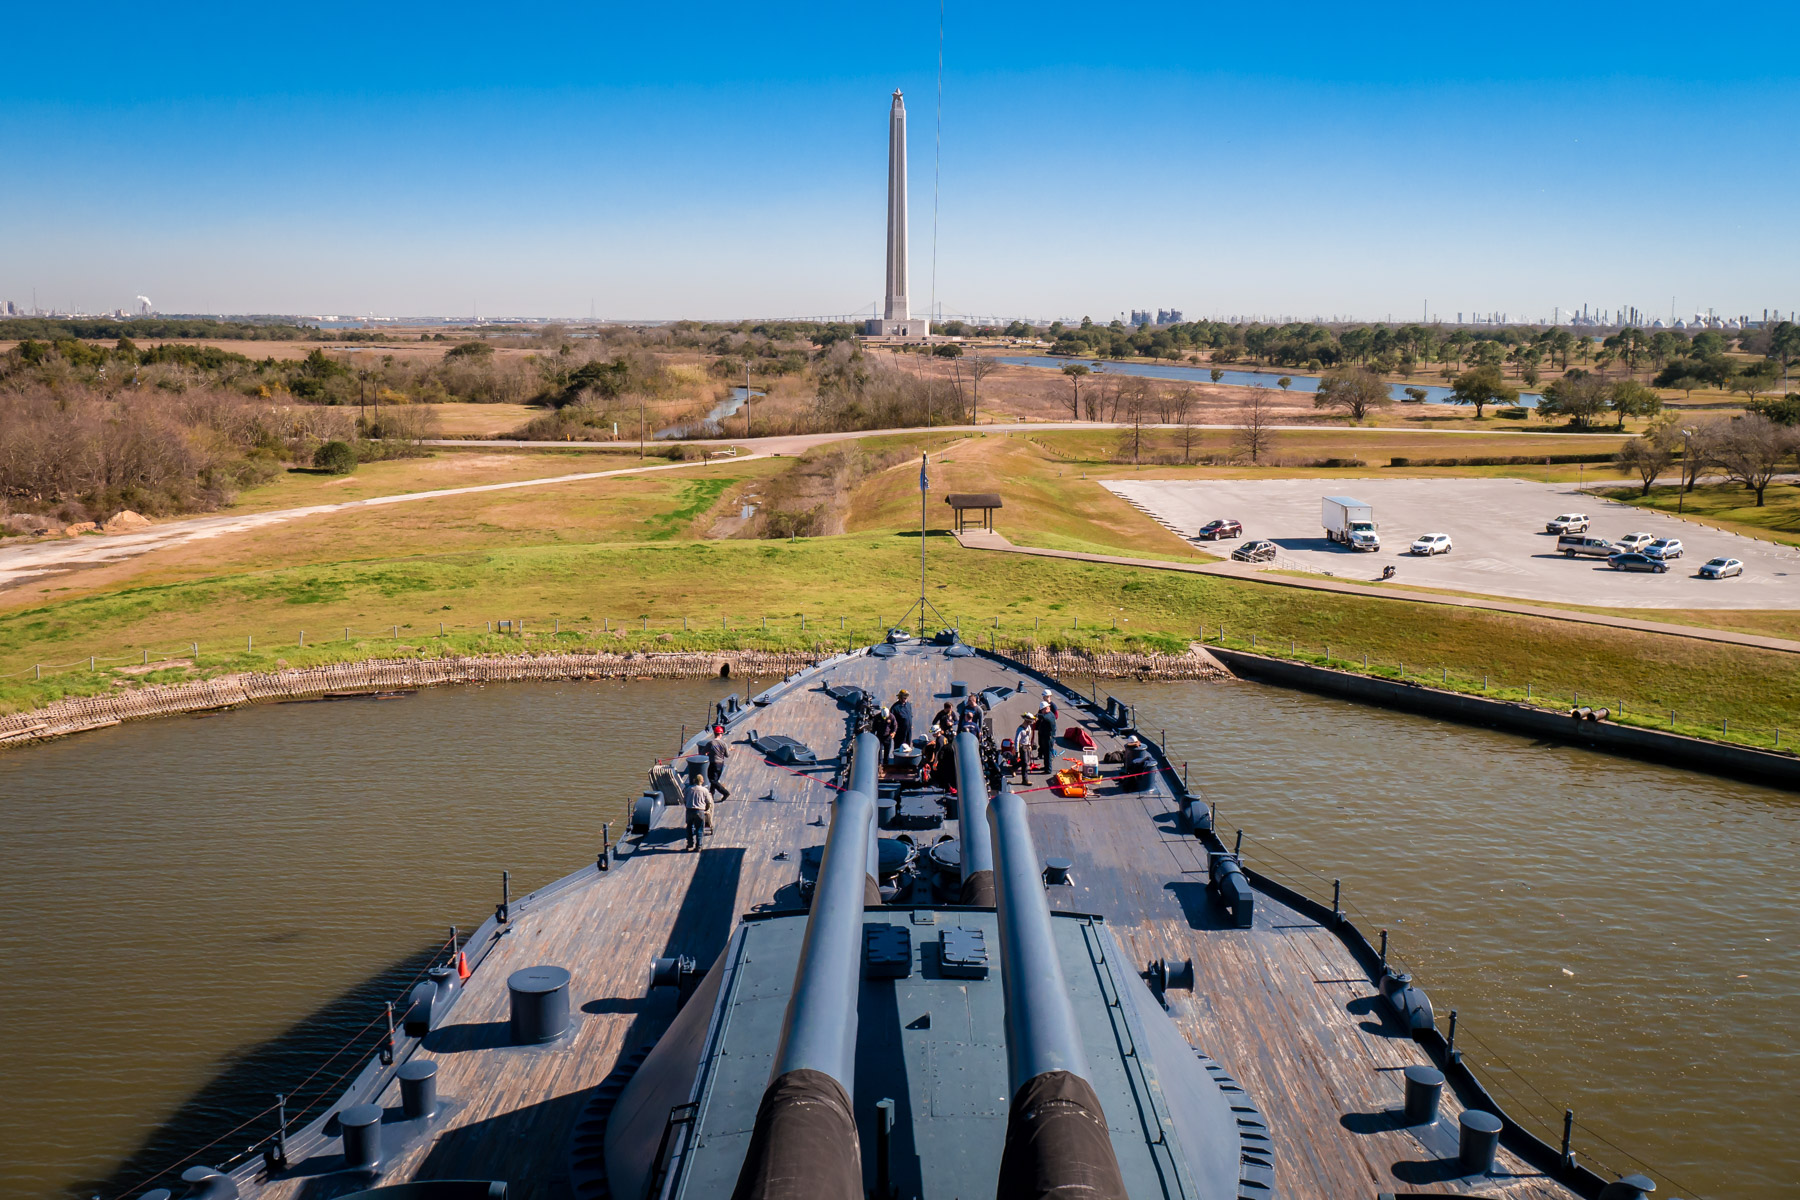 The main guns of the battleshipUSS Texas seem to aim at the nearby San Jacinto Monument as workers repair the wooden deck of the dreadnought, now docked as a museum ship near Houston.